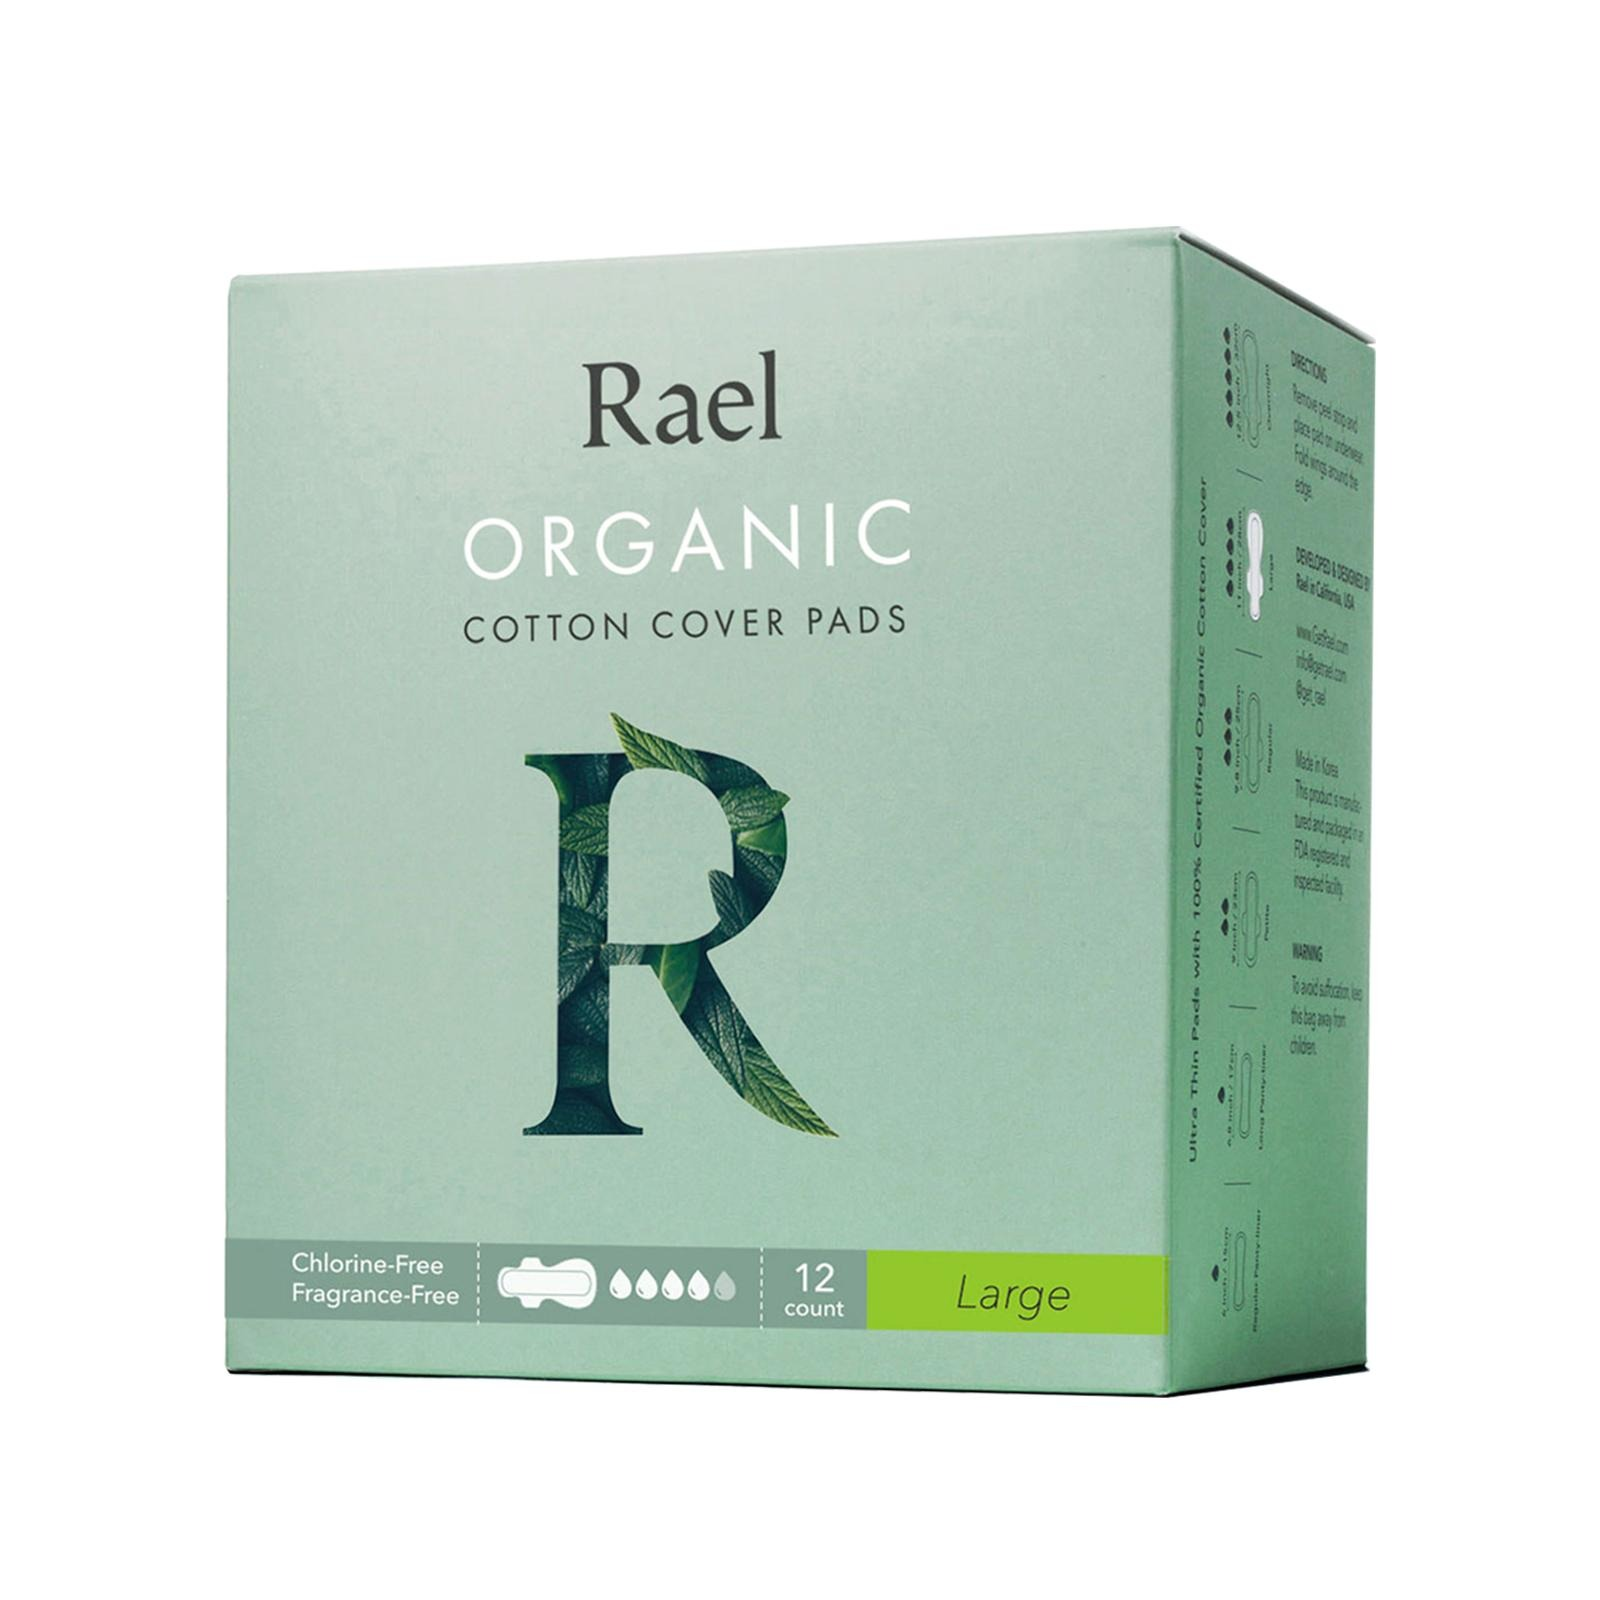 Rael Organic Cotton Cover Pads - Large